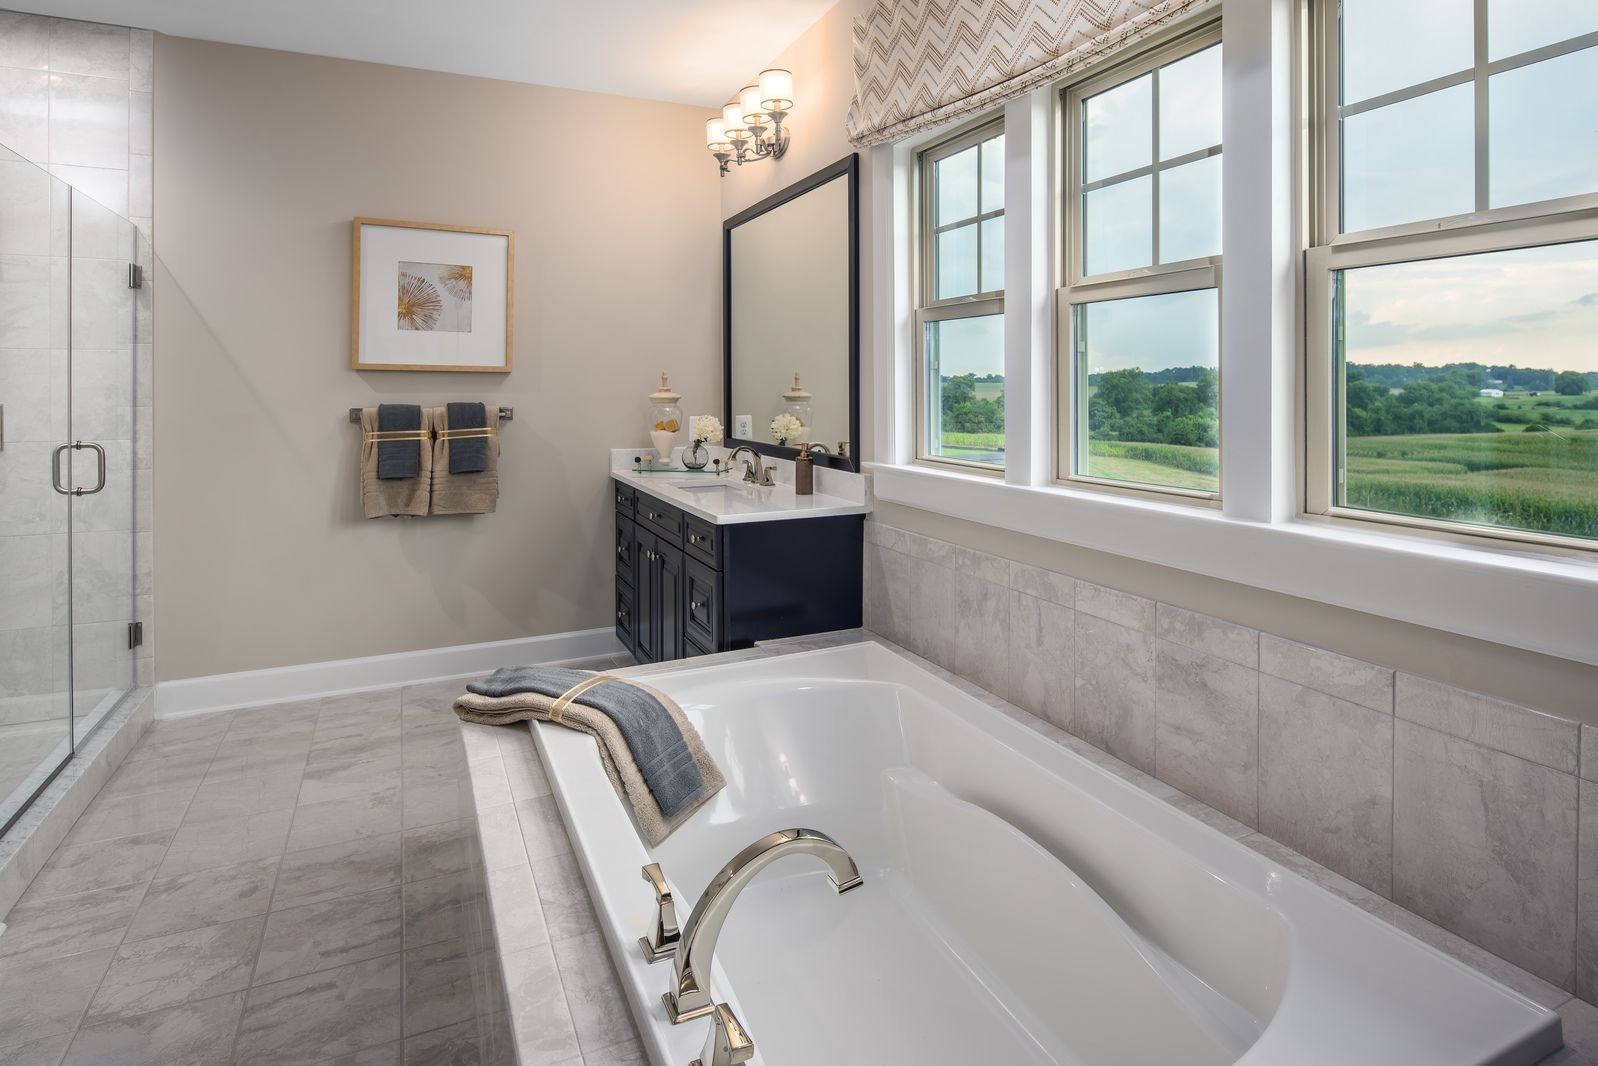 Bathroom featured in the Marymount By NVHomes in Washington, VA